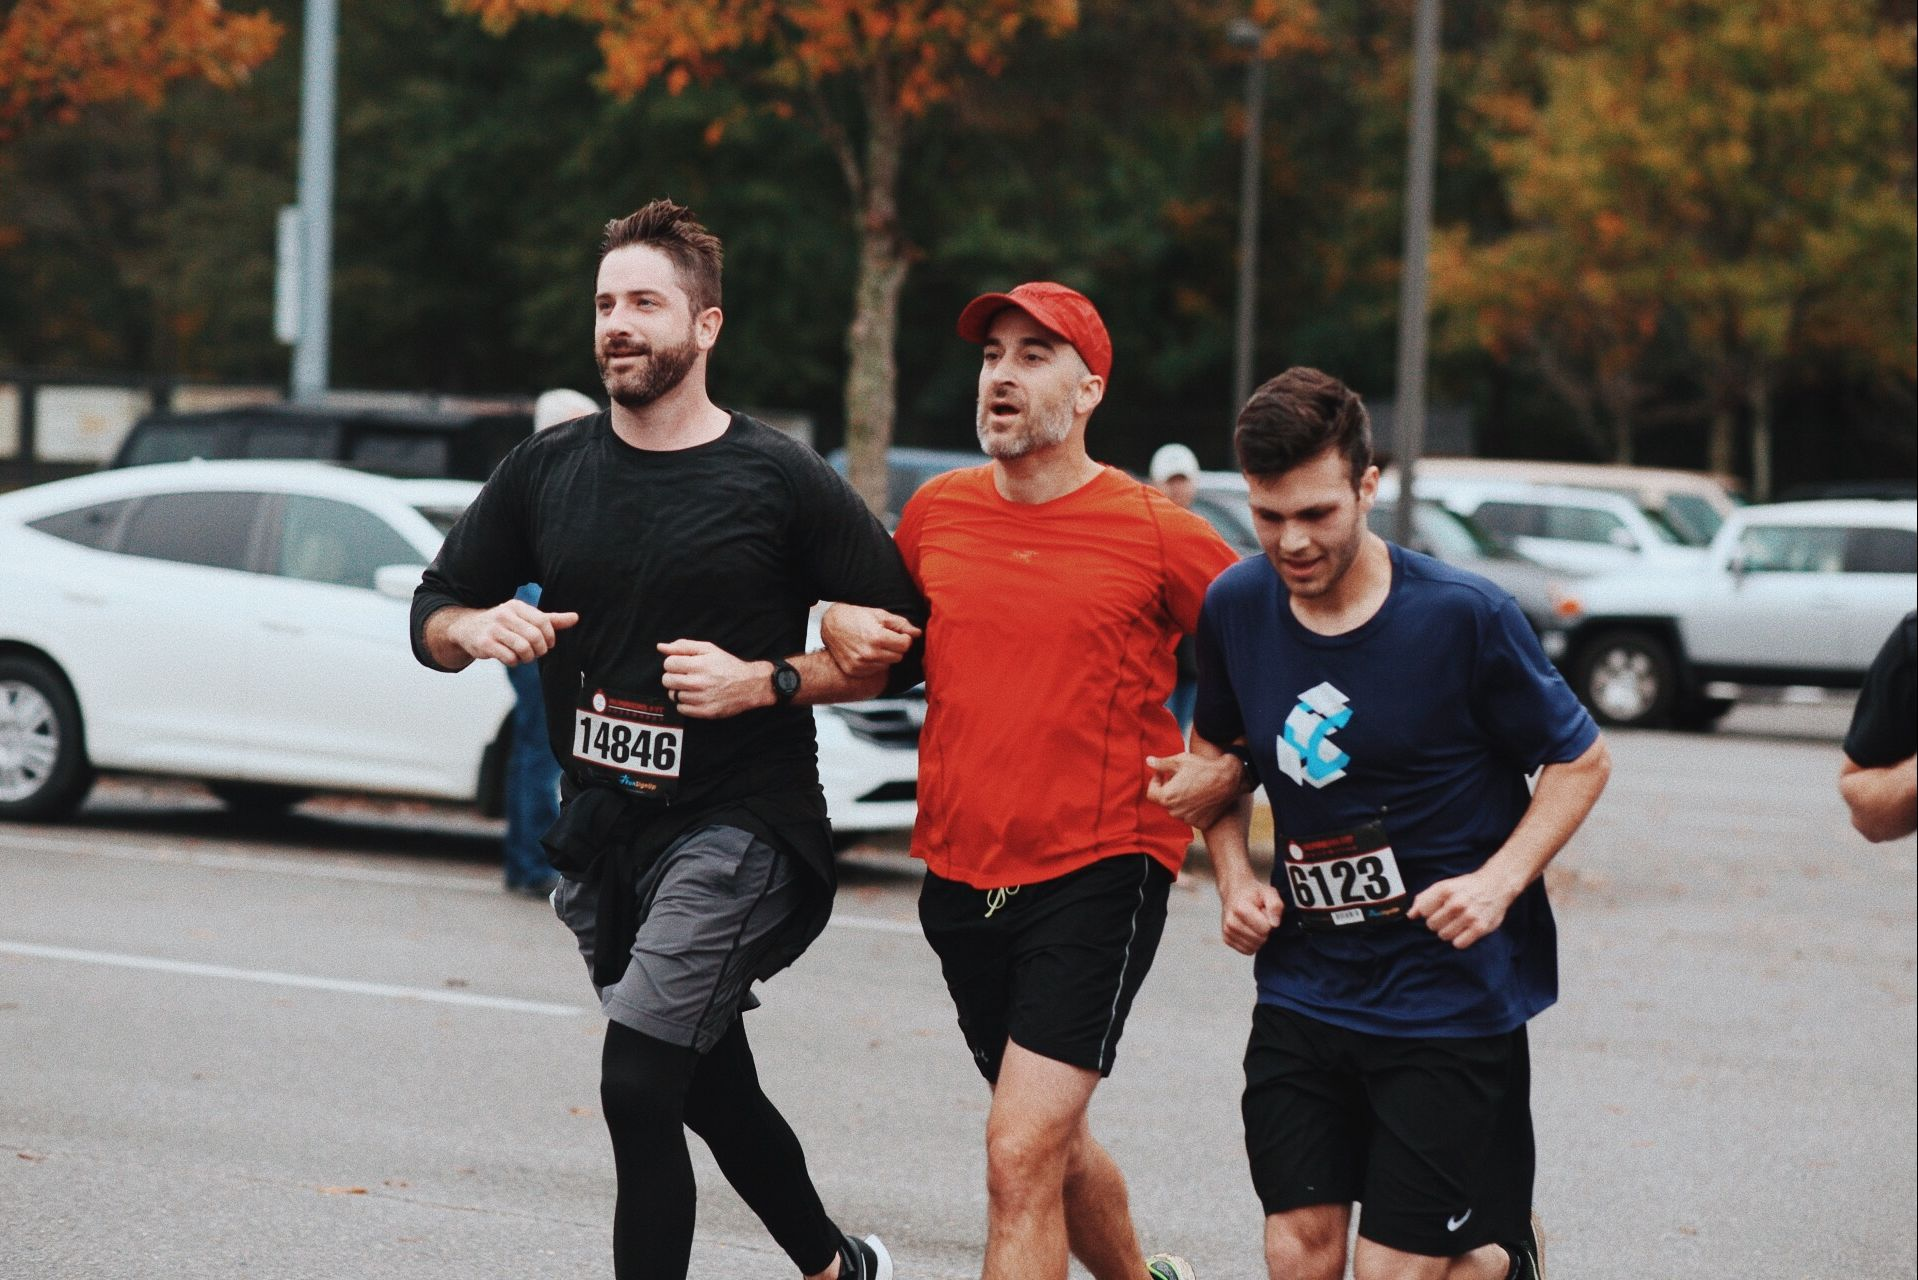 This College Makes Every Student Run a Half Marathon